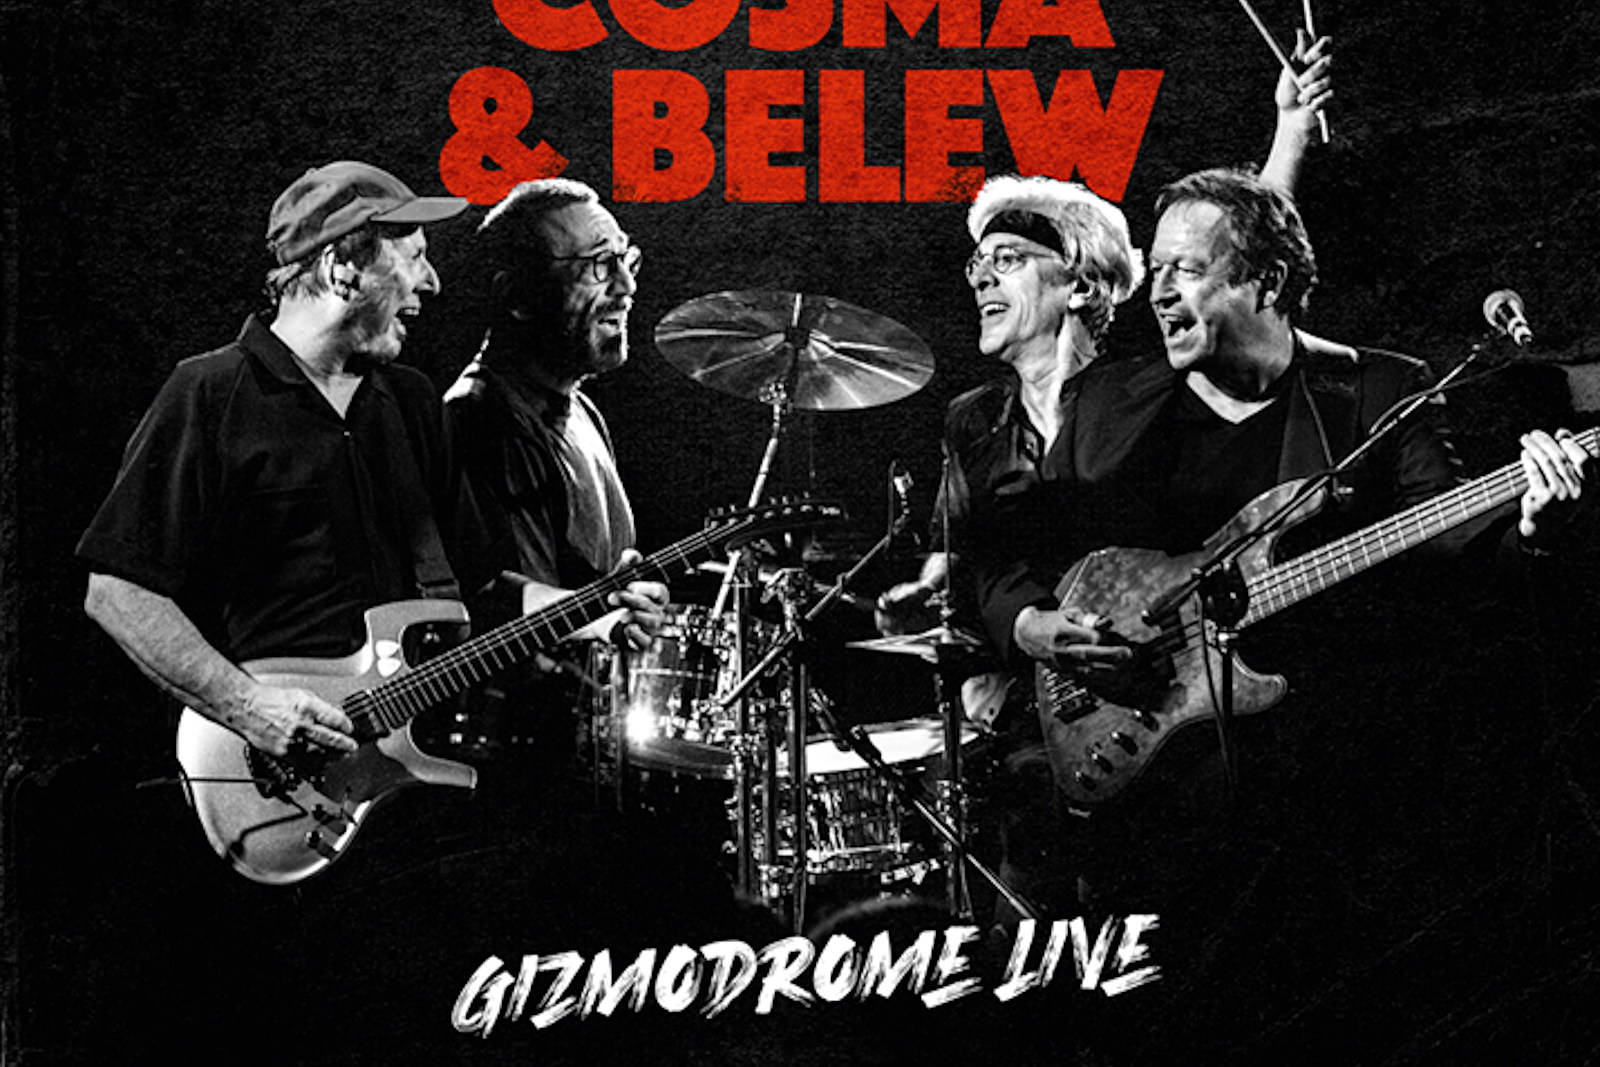 Stewart Copeland and Adrian Belew's Gizmodrome Announce Live LP